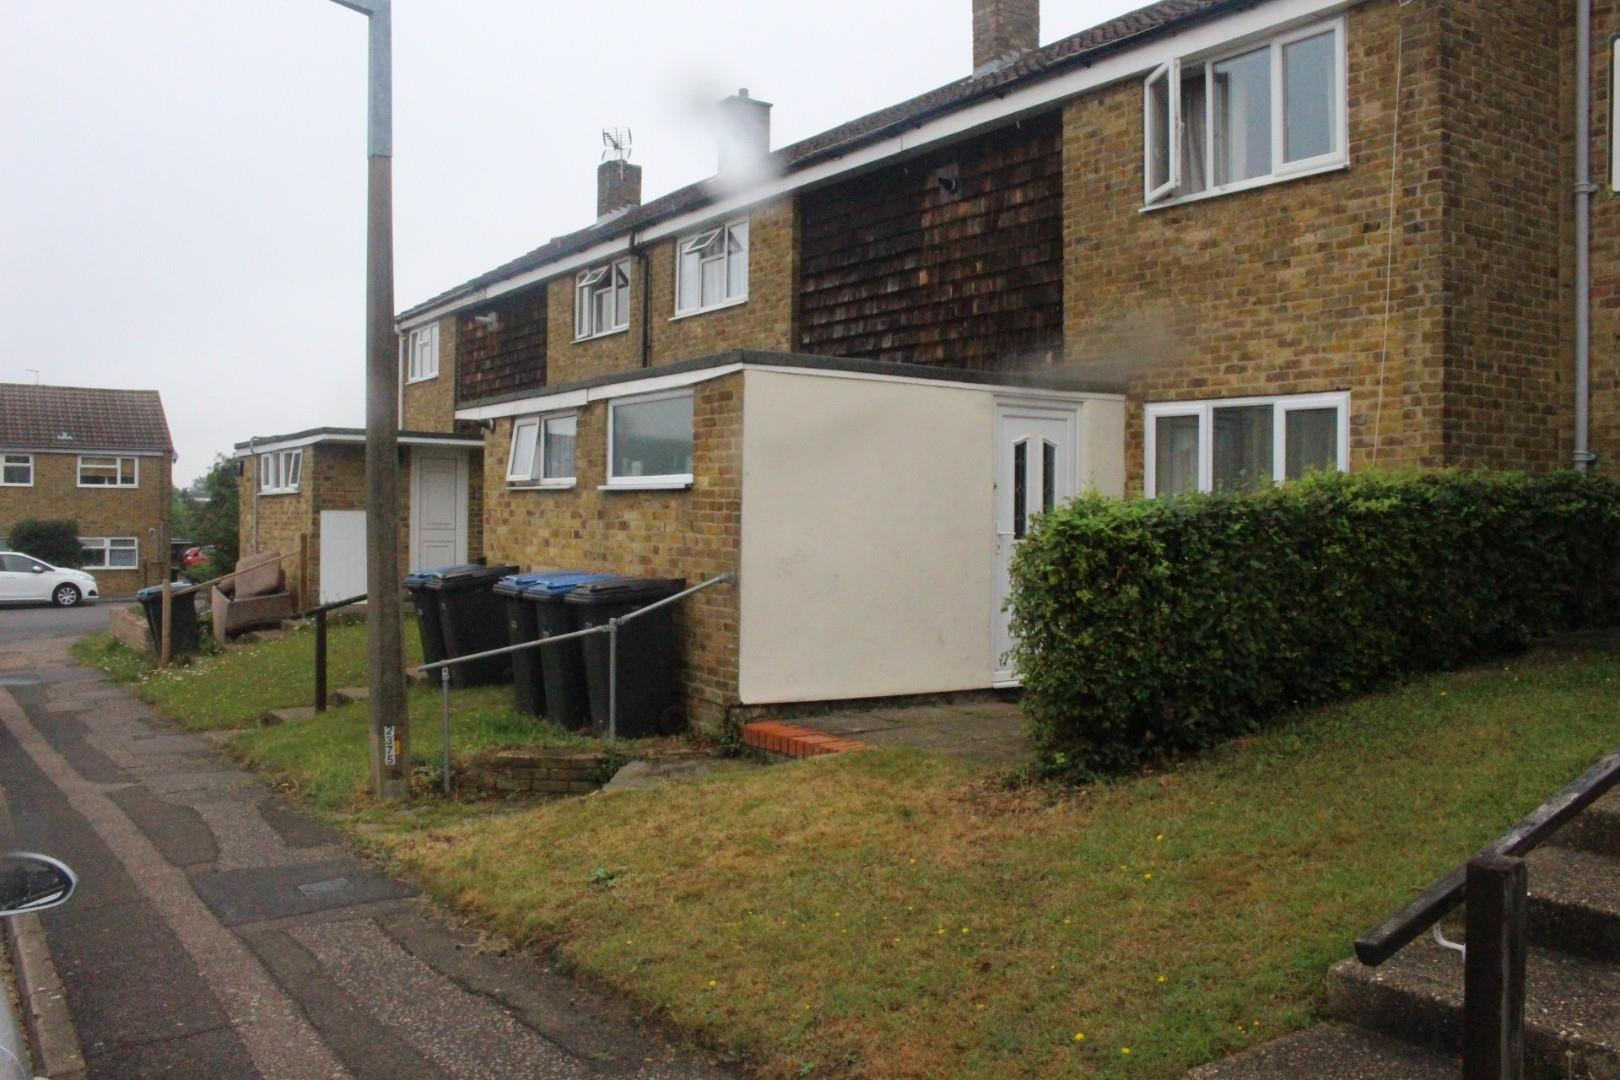 2 BEDROOM HOUSE FOR RENT IN HARLOW